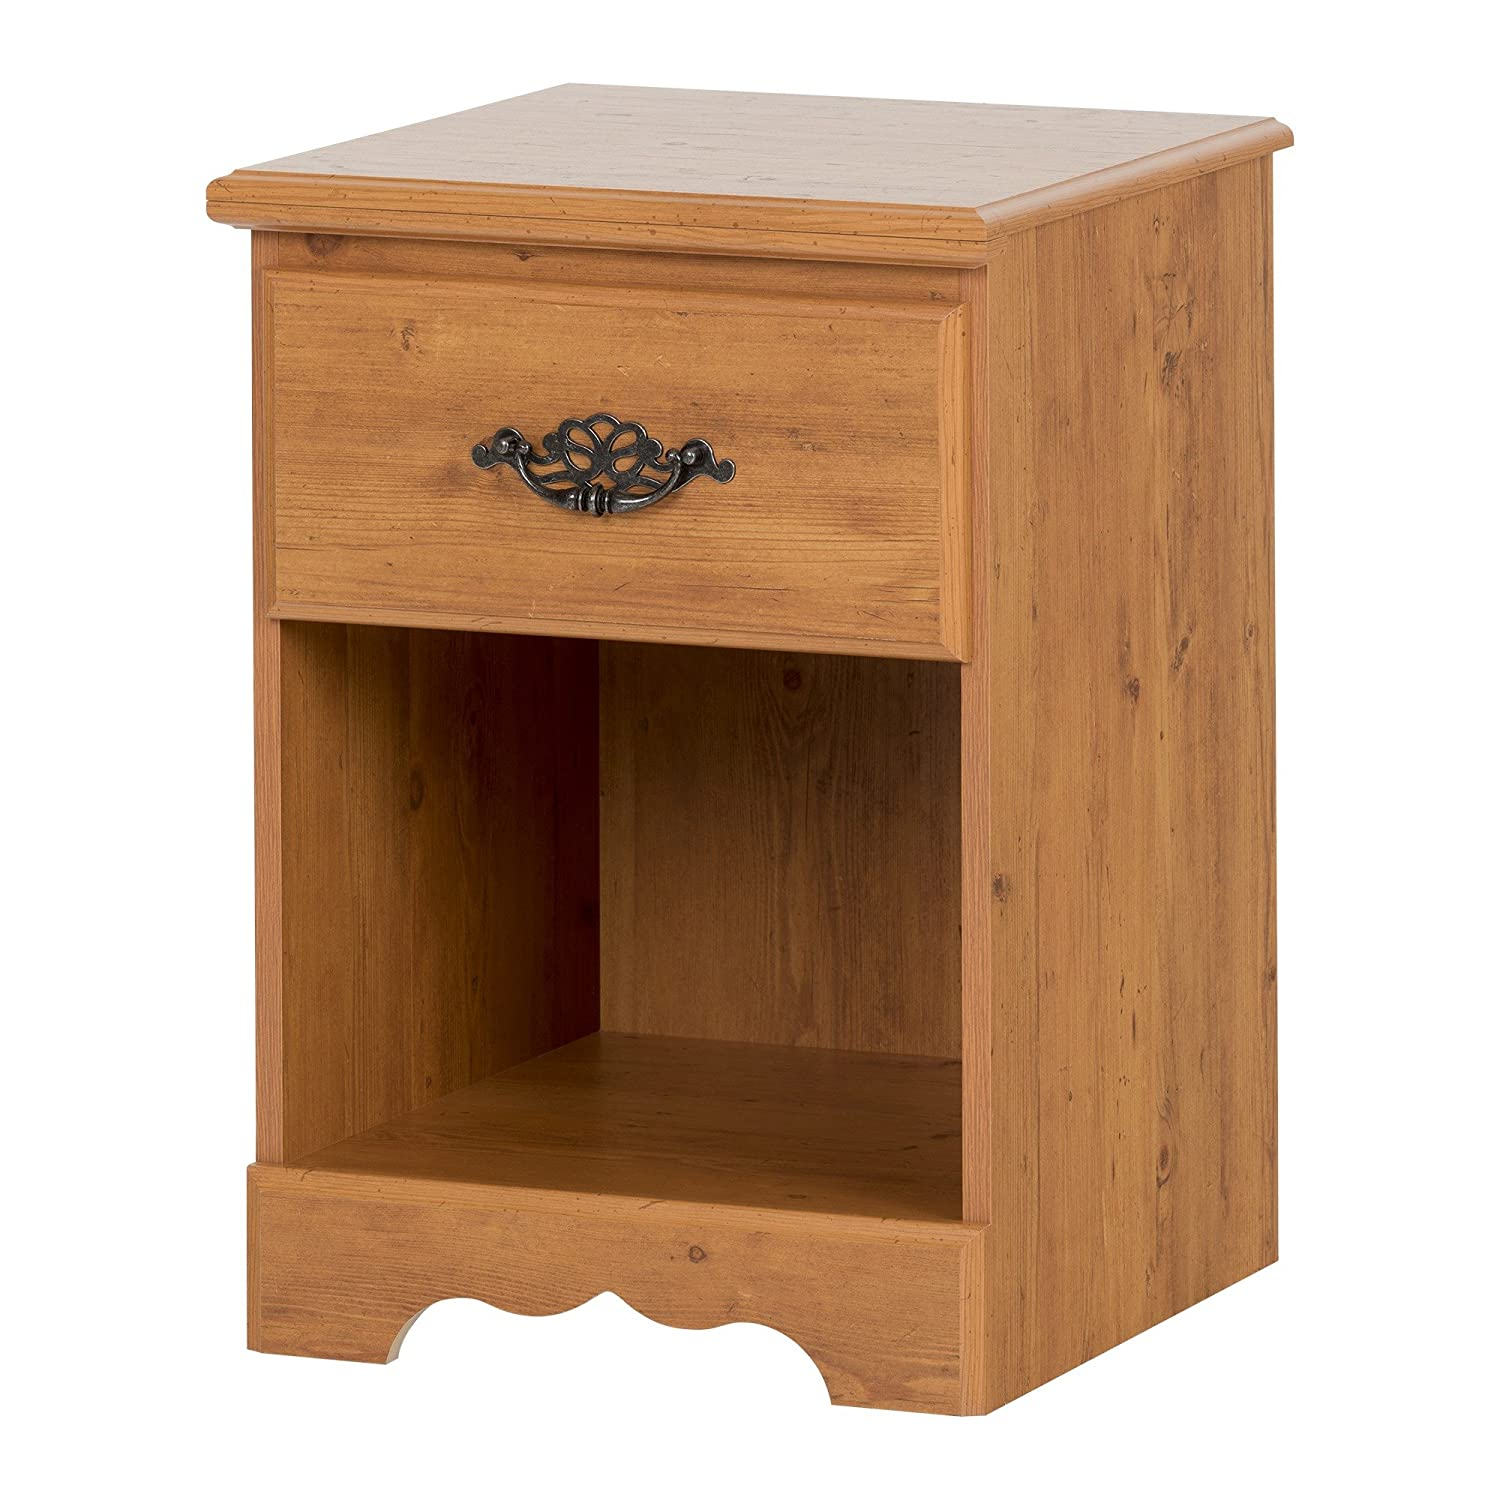 South Shore Furniture Prairie Collection, Night Table with open case, Country Pine 3232062